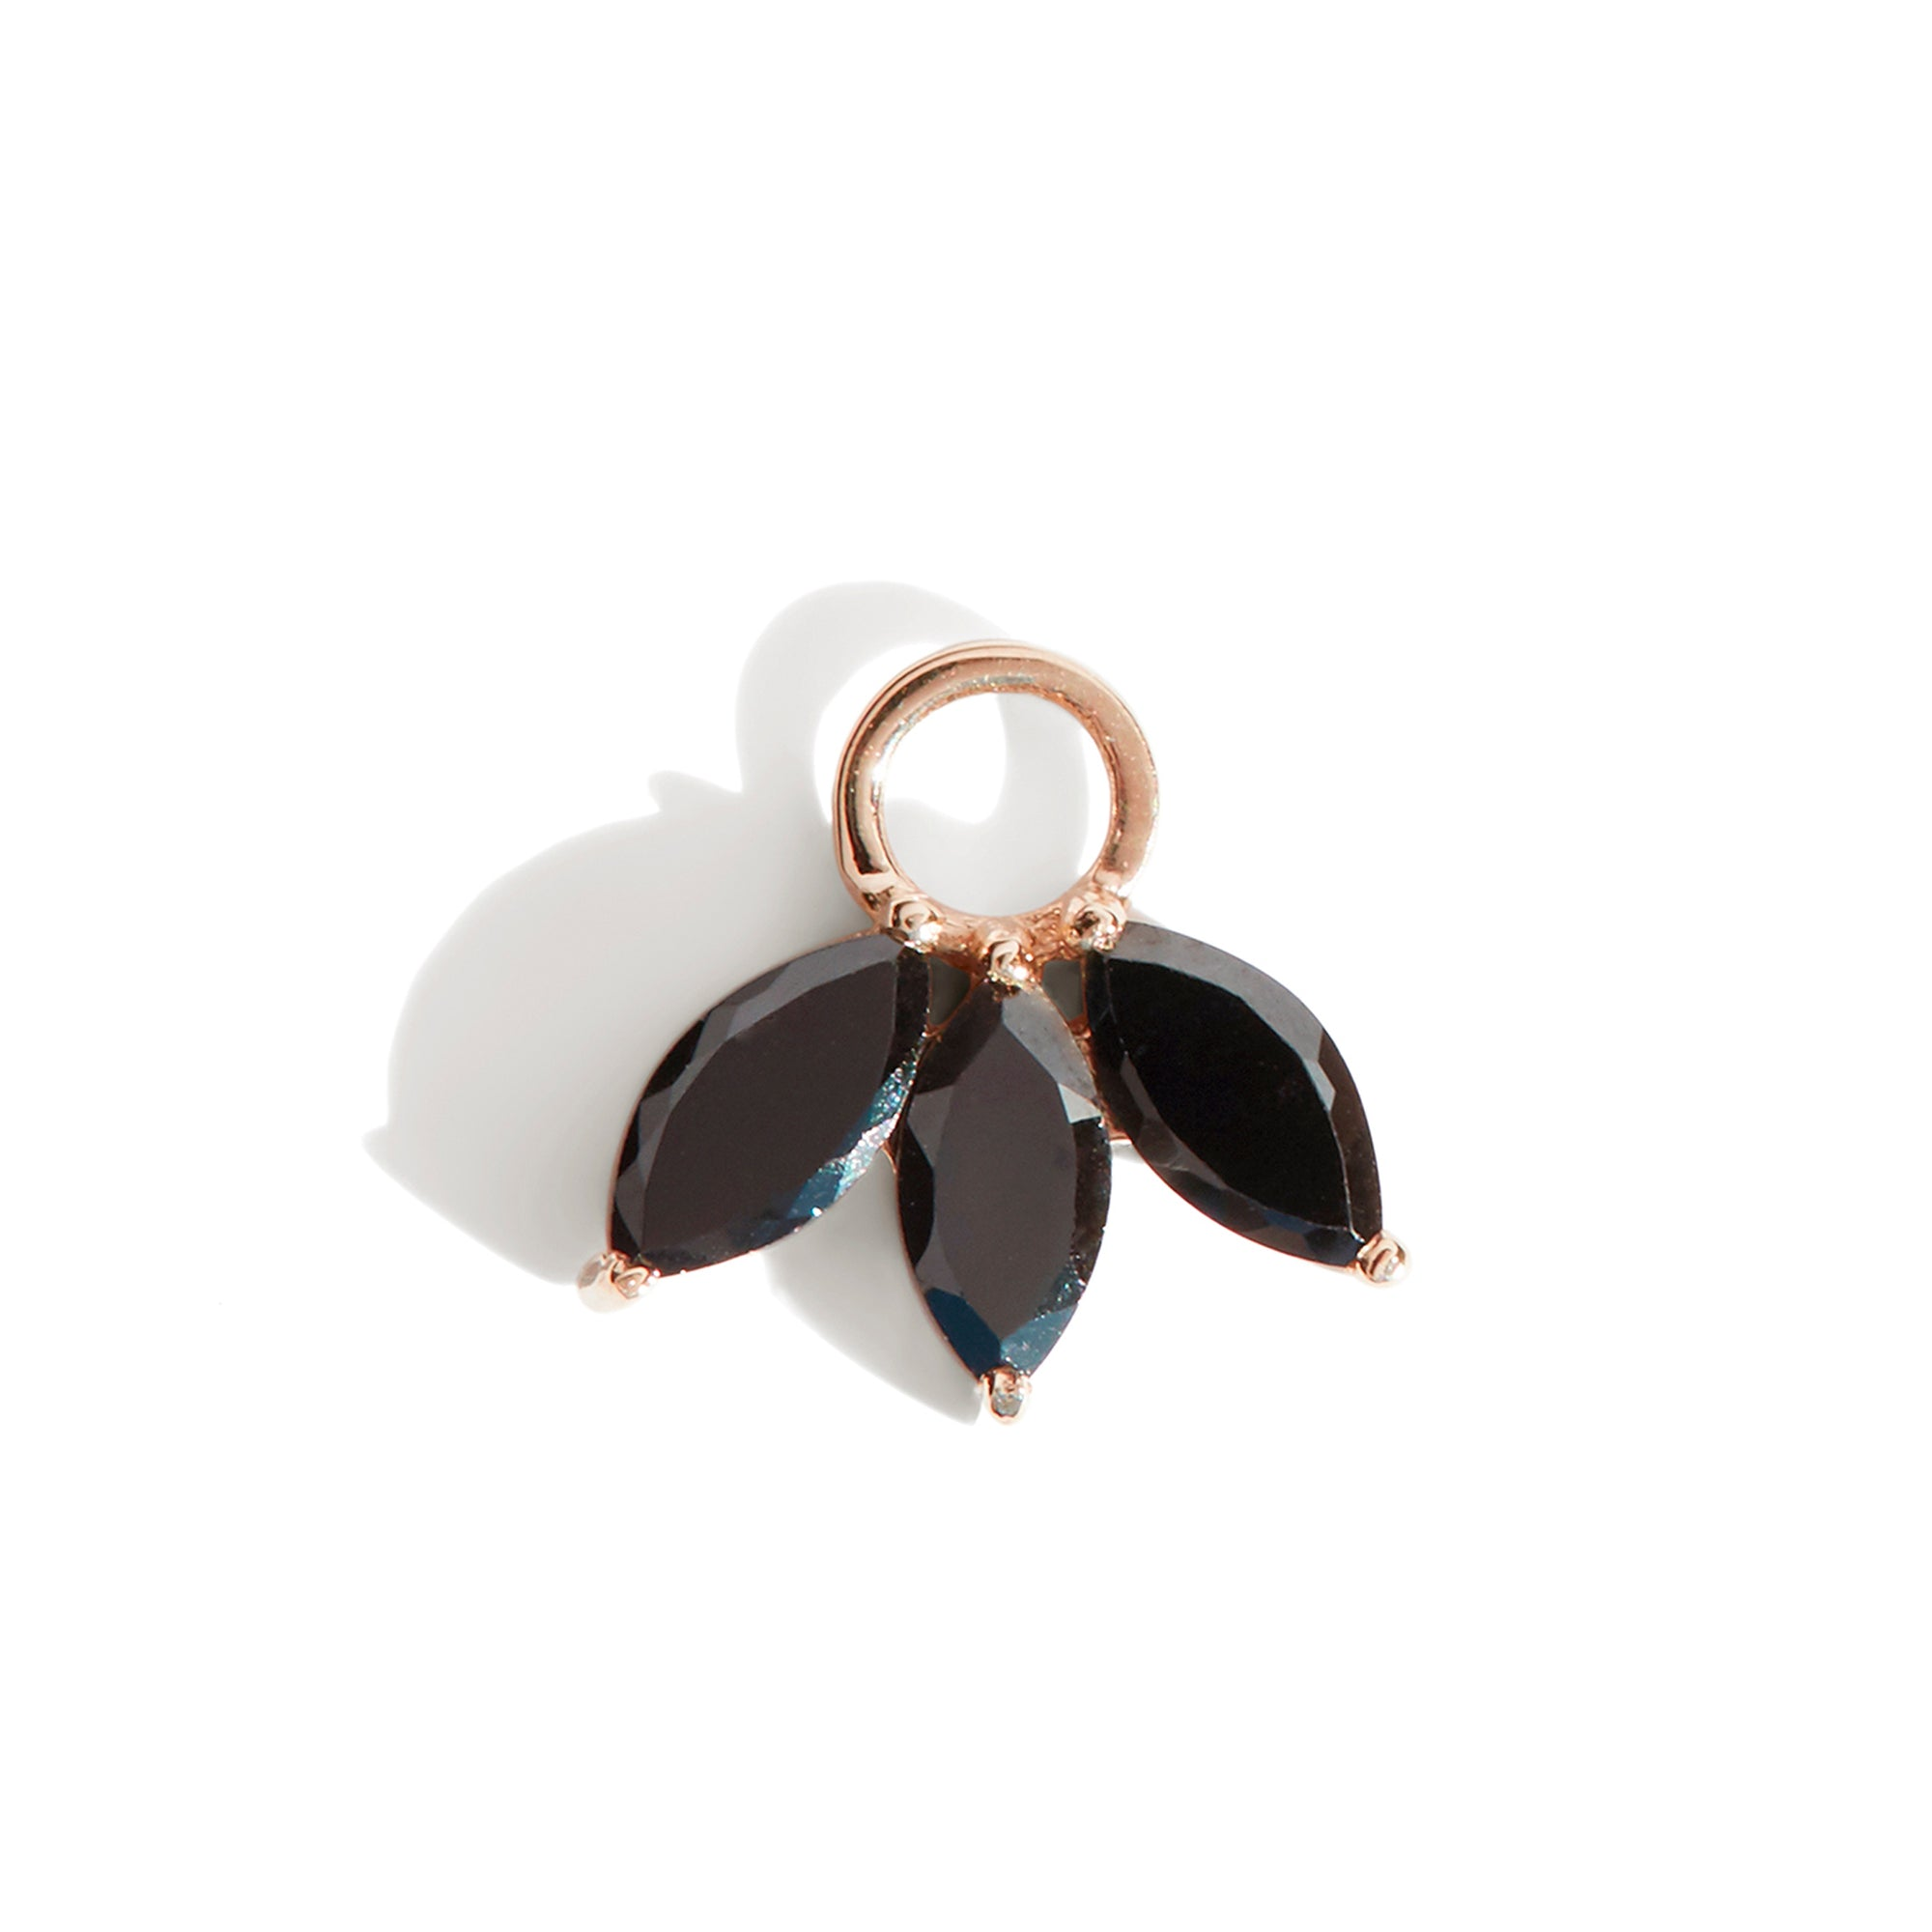 The Tri Spinel Marquise Charm in 9kt Rose Gold